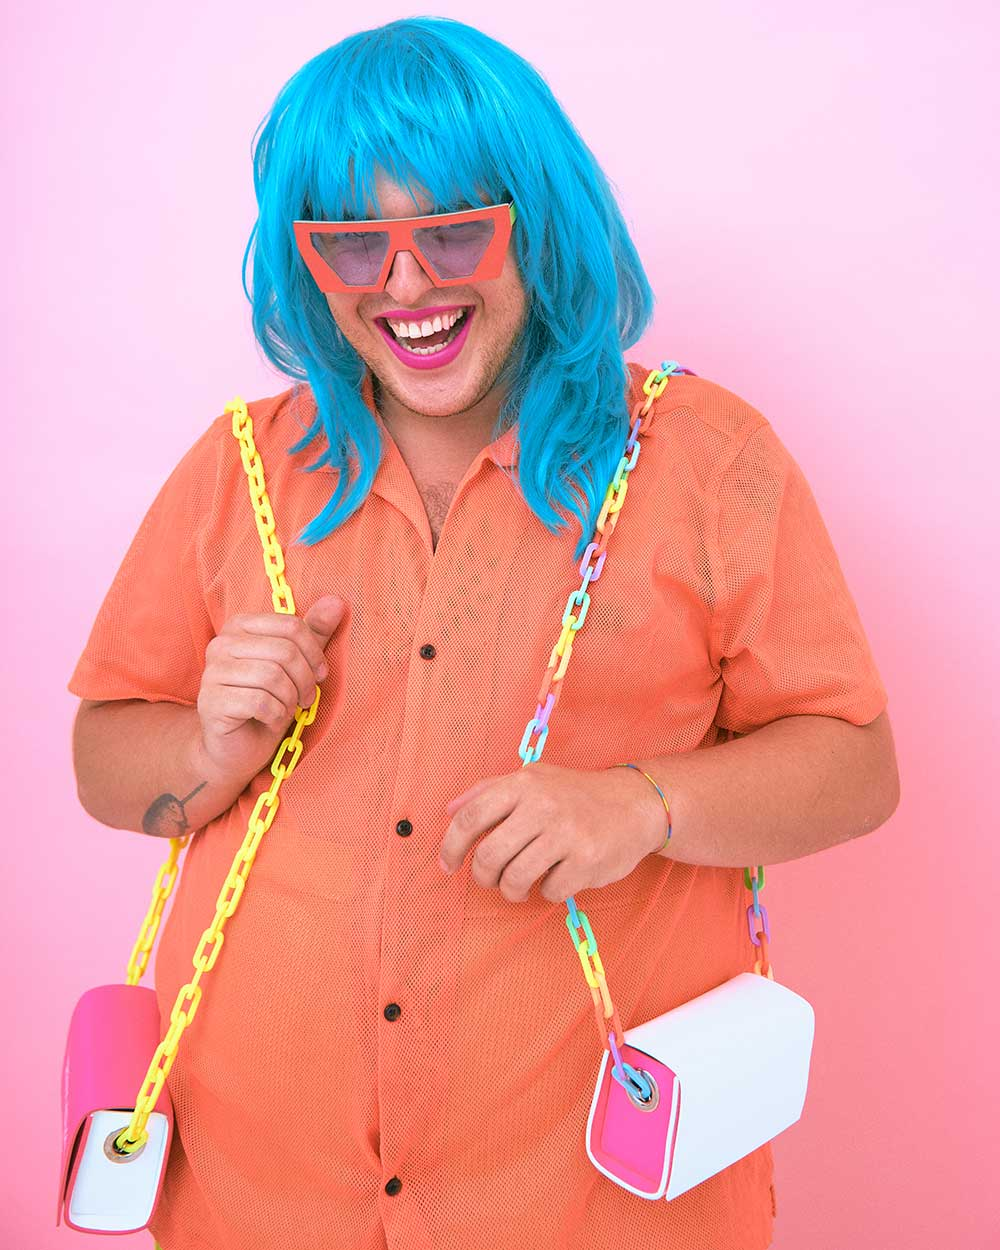 person wearing blue wig and orange sunglasses